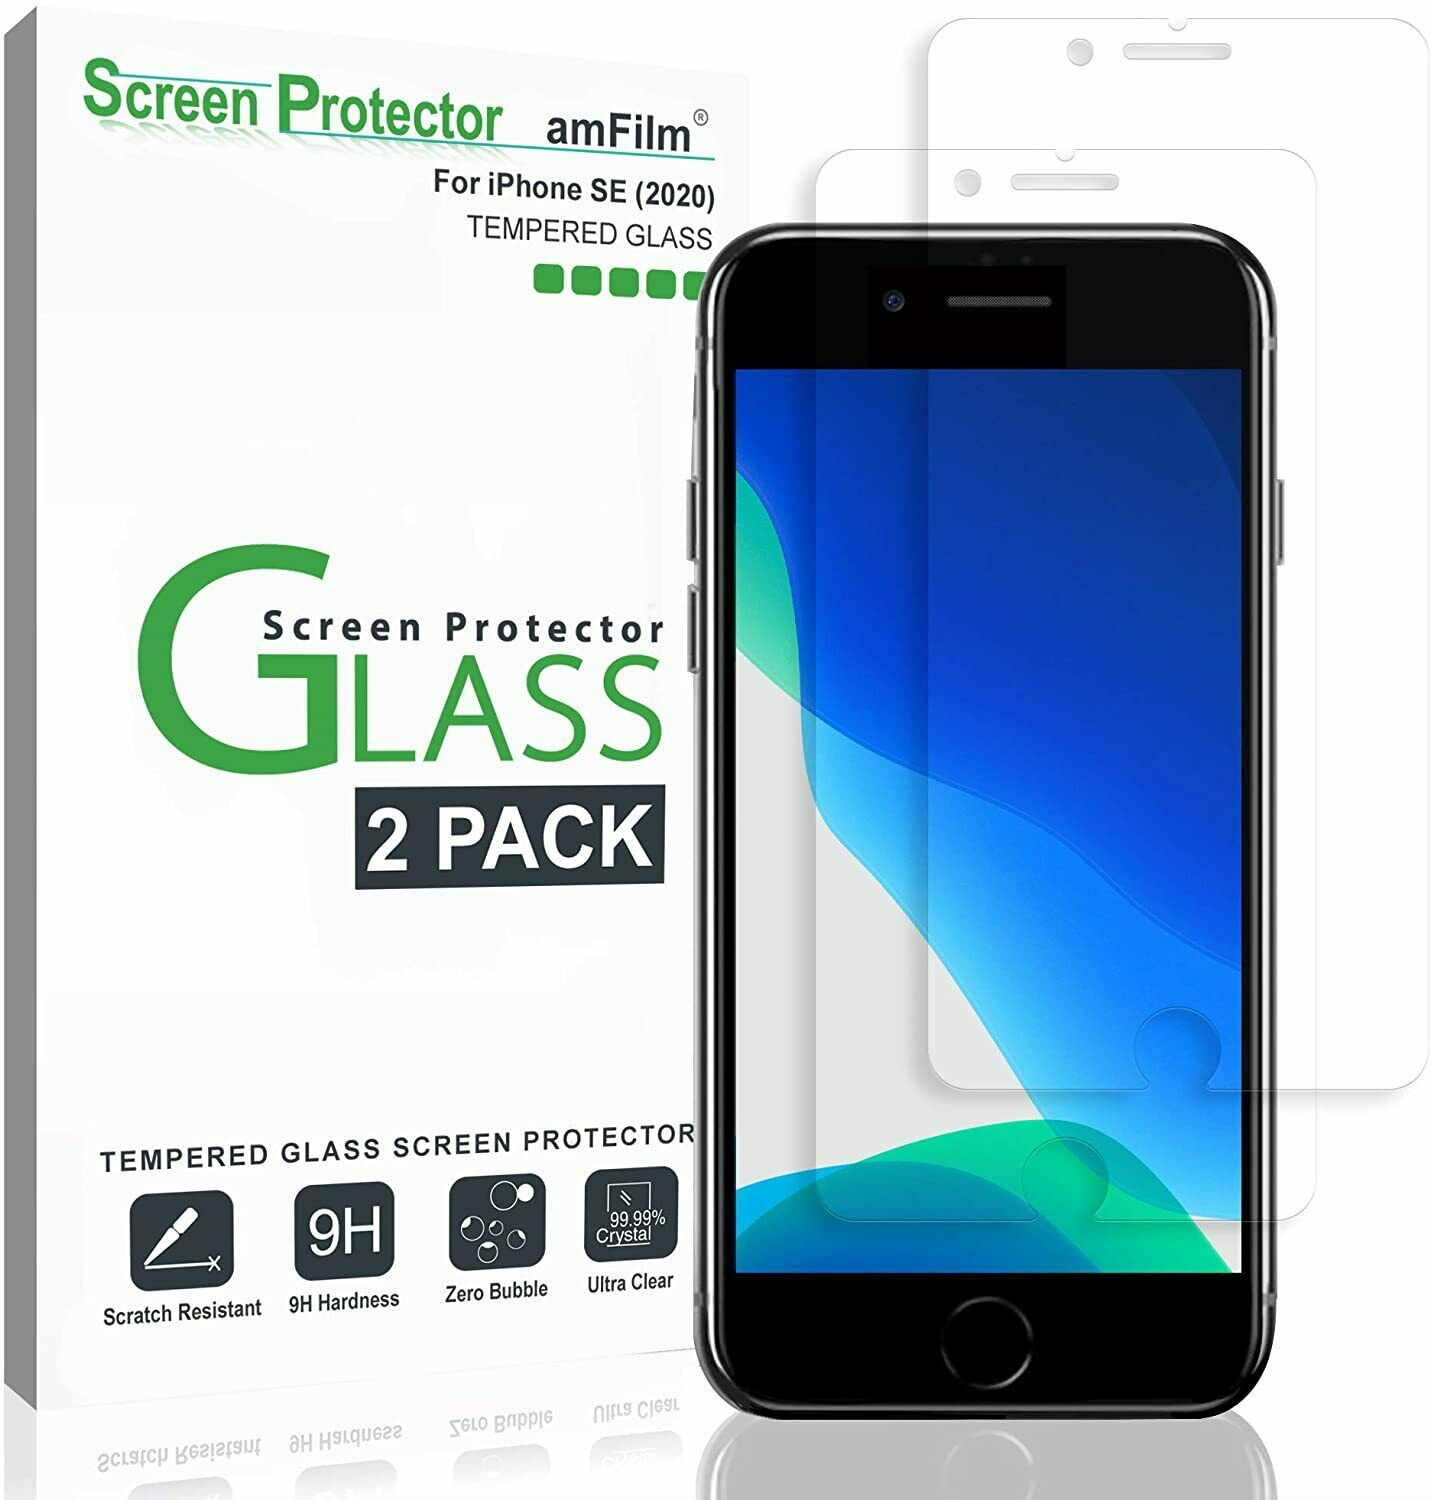 iPhone 6/6S Tempered Clear Glass Screen Protector amFilm 0.26mm thick, 2 Pack